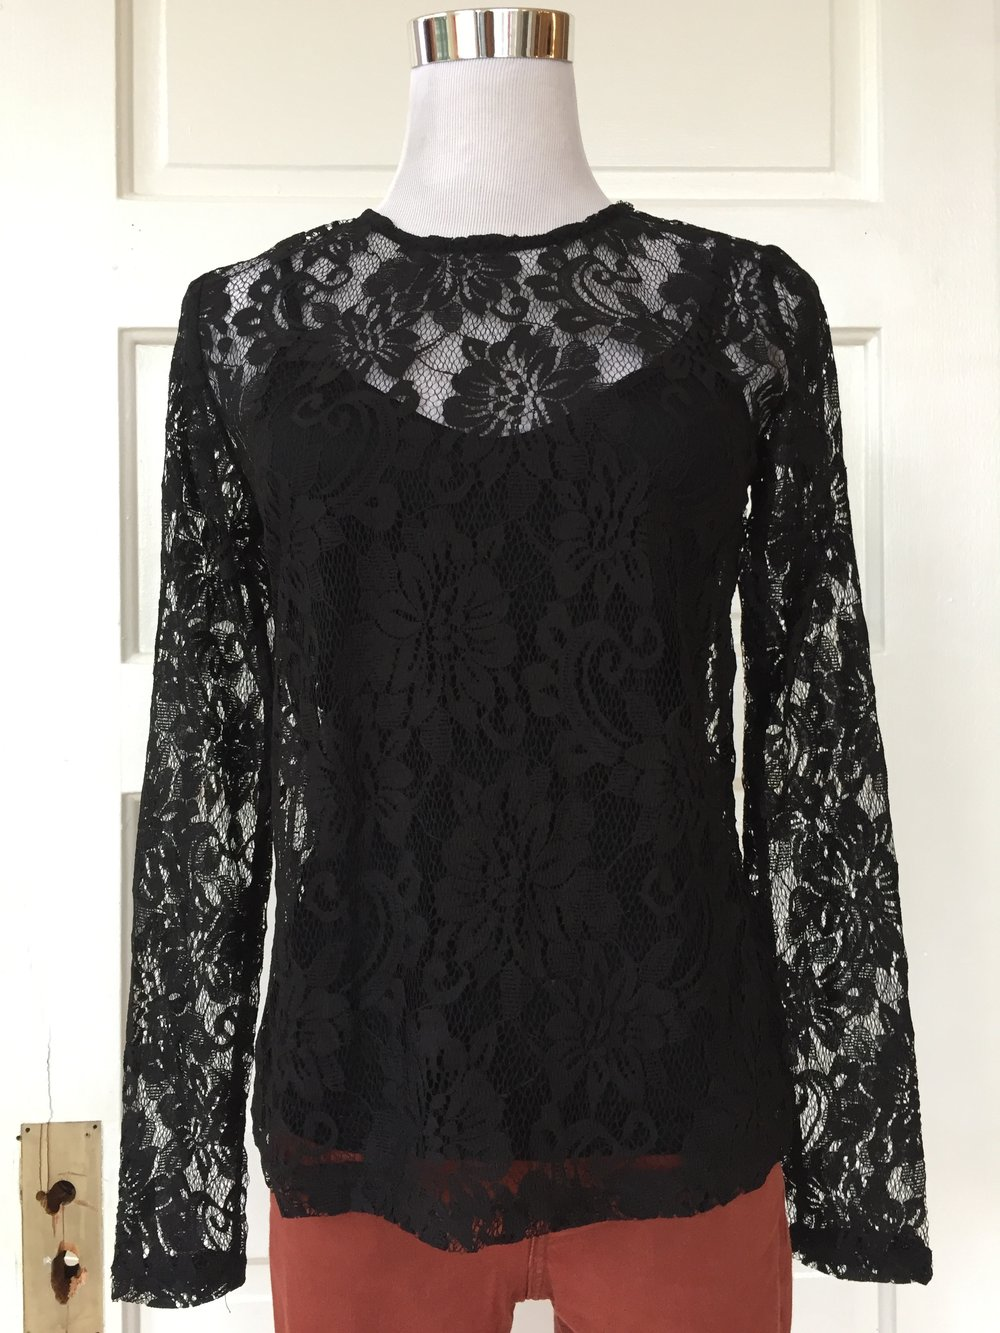 Black lace top ($38)